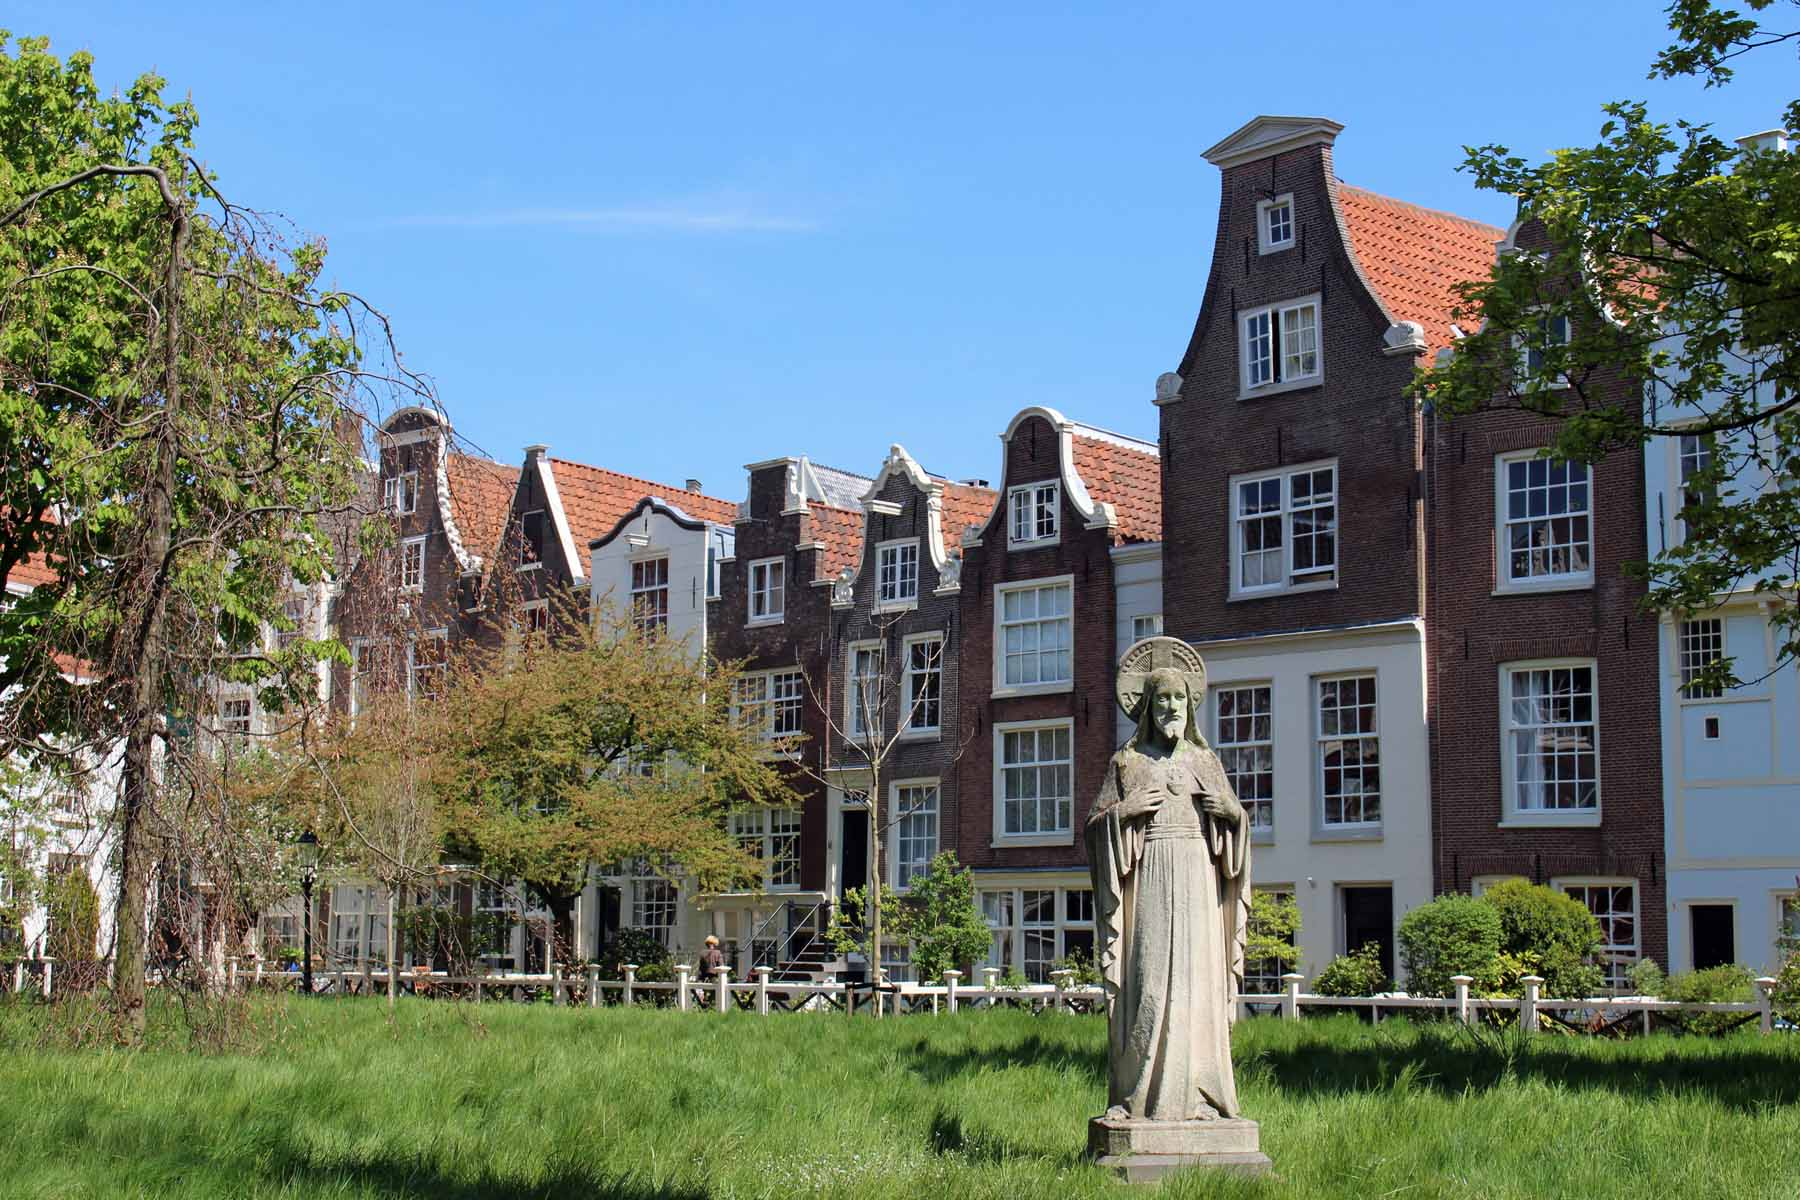 The Beguin convent - Begijnhof, in Amsterdam